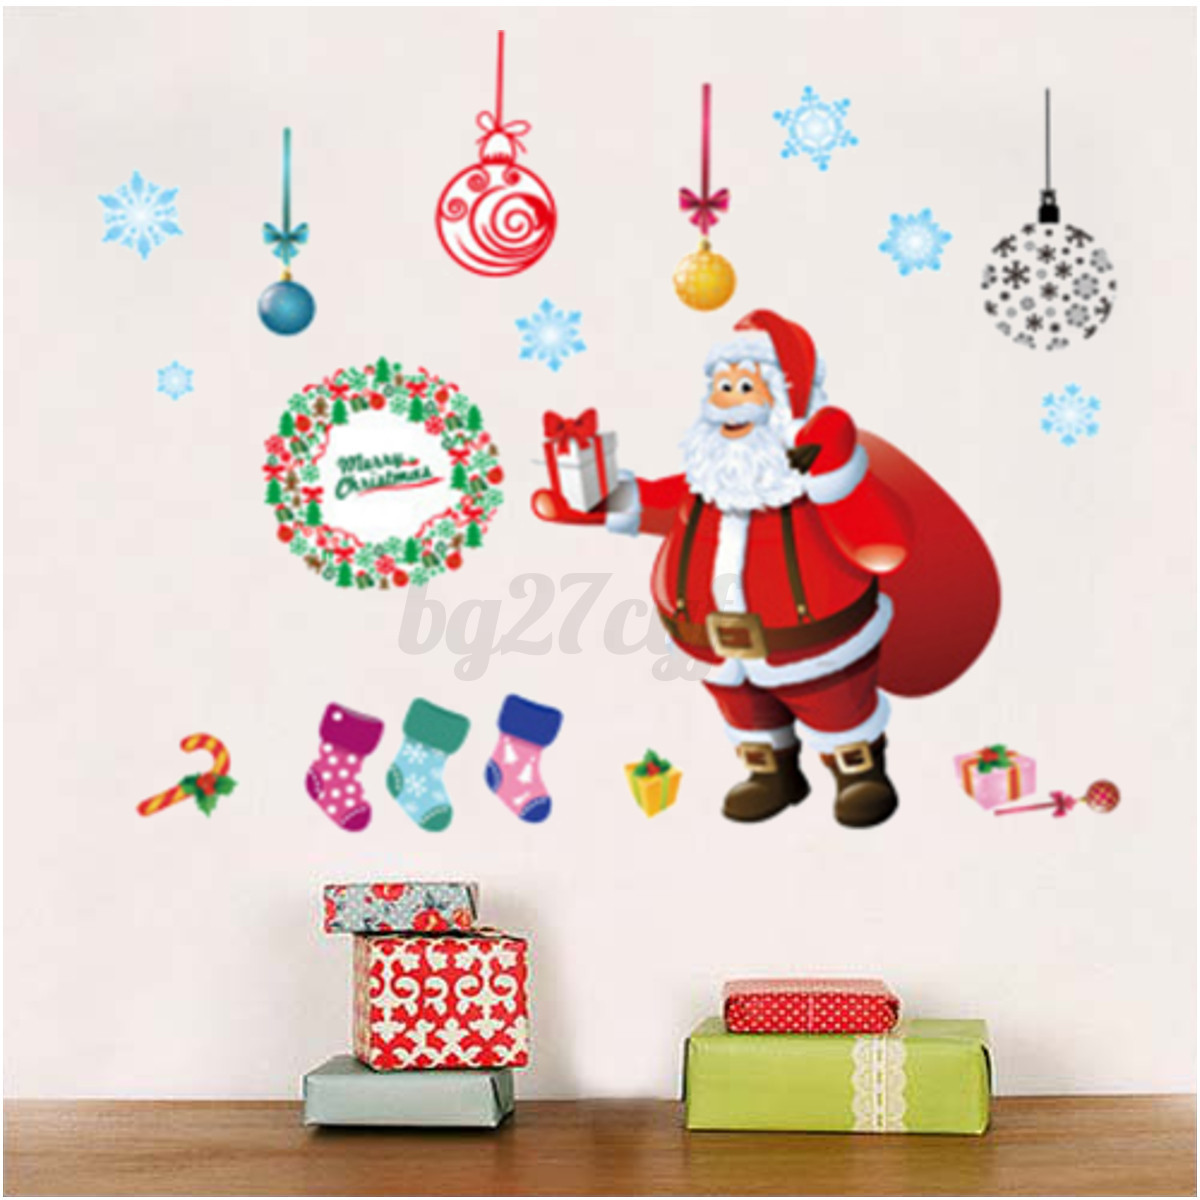 Large christmas tree wall stickers window decal mural - Adesivo murale finestra ...